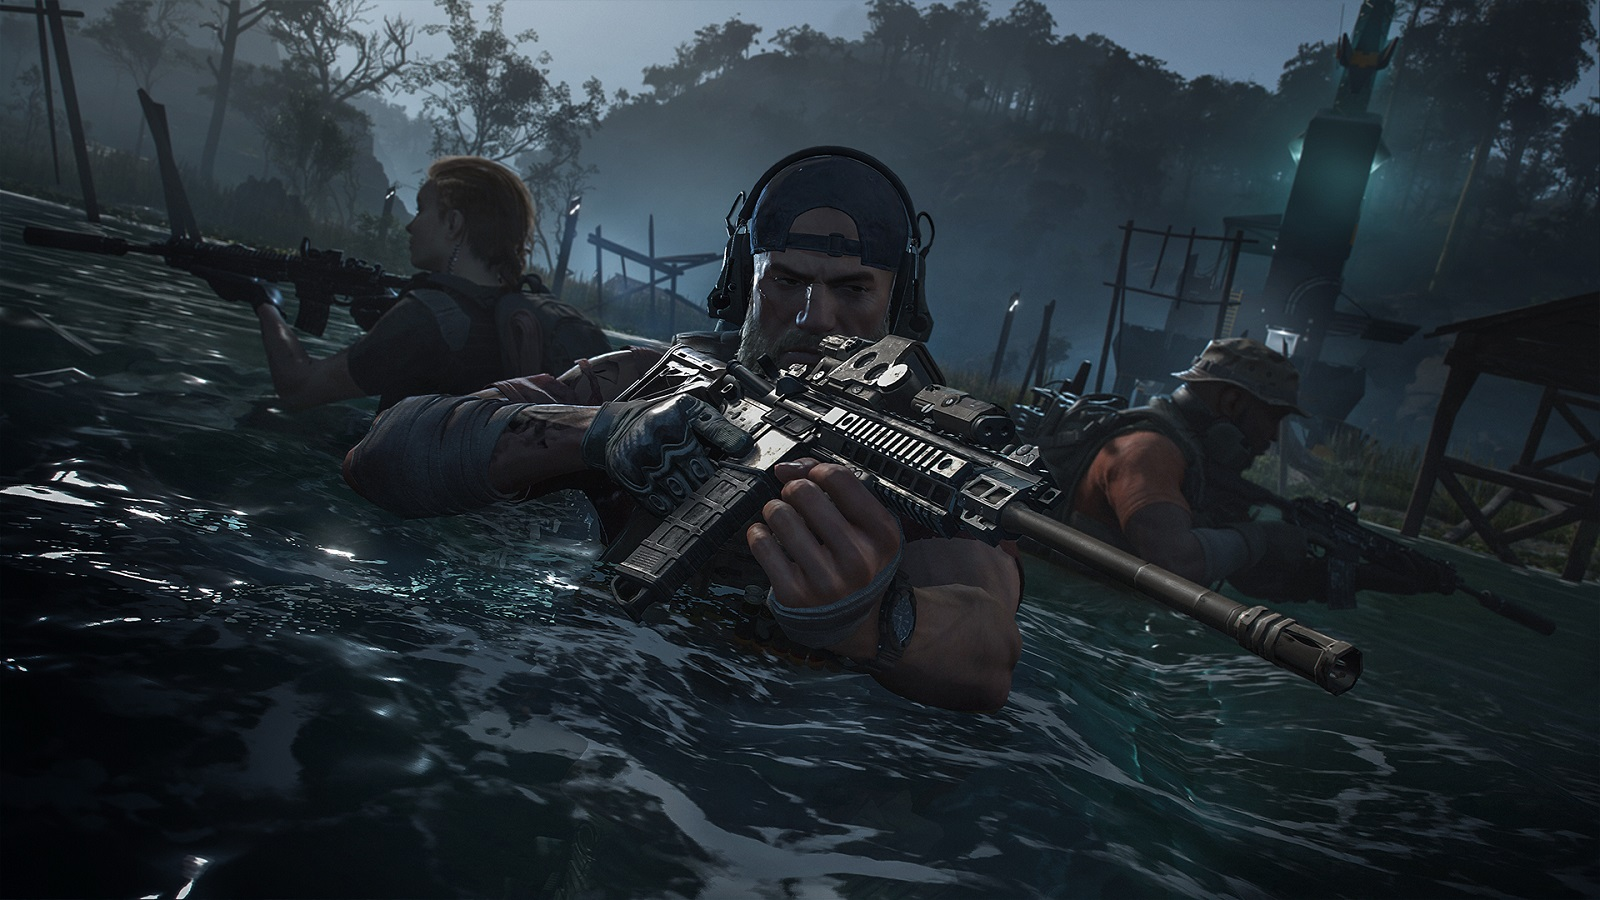 The objective is clear: survive your breakpoint – Ghost ... on ghosts xbox 360 maps, ninja gaiden maps, recon training map maps, runescape maps, raven shield maps, ghost games, rainbow 6 vegas 2 maps, delta force maps, ghost soldiers, rainbow six vegas maps,